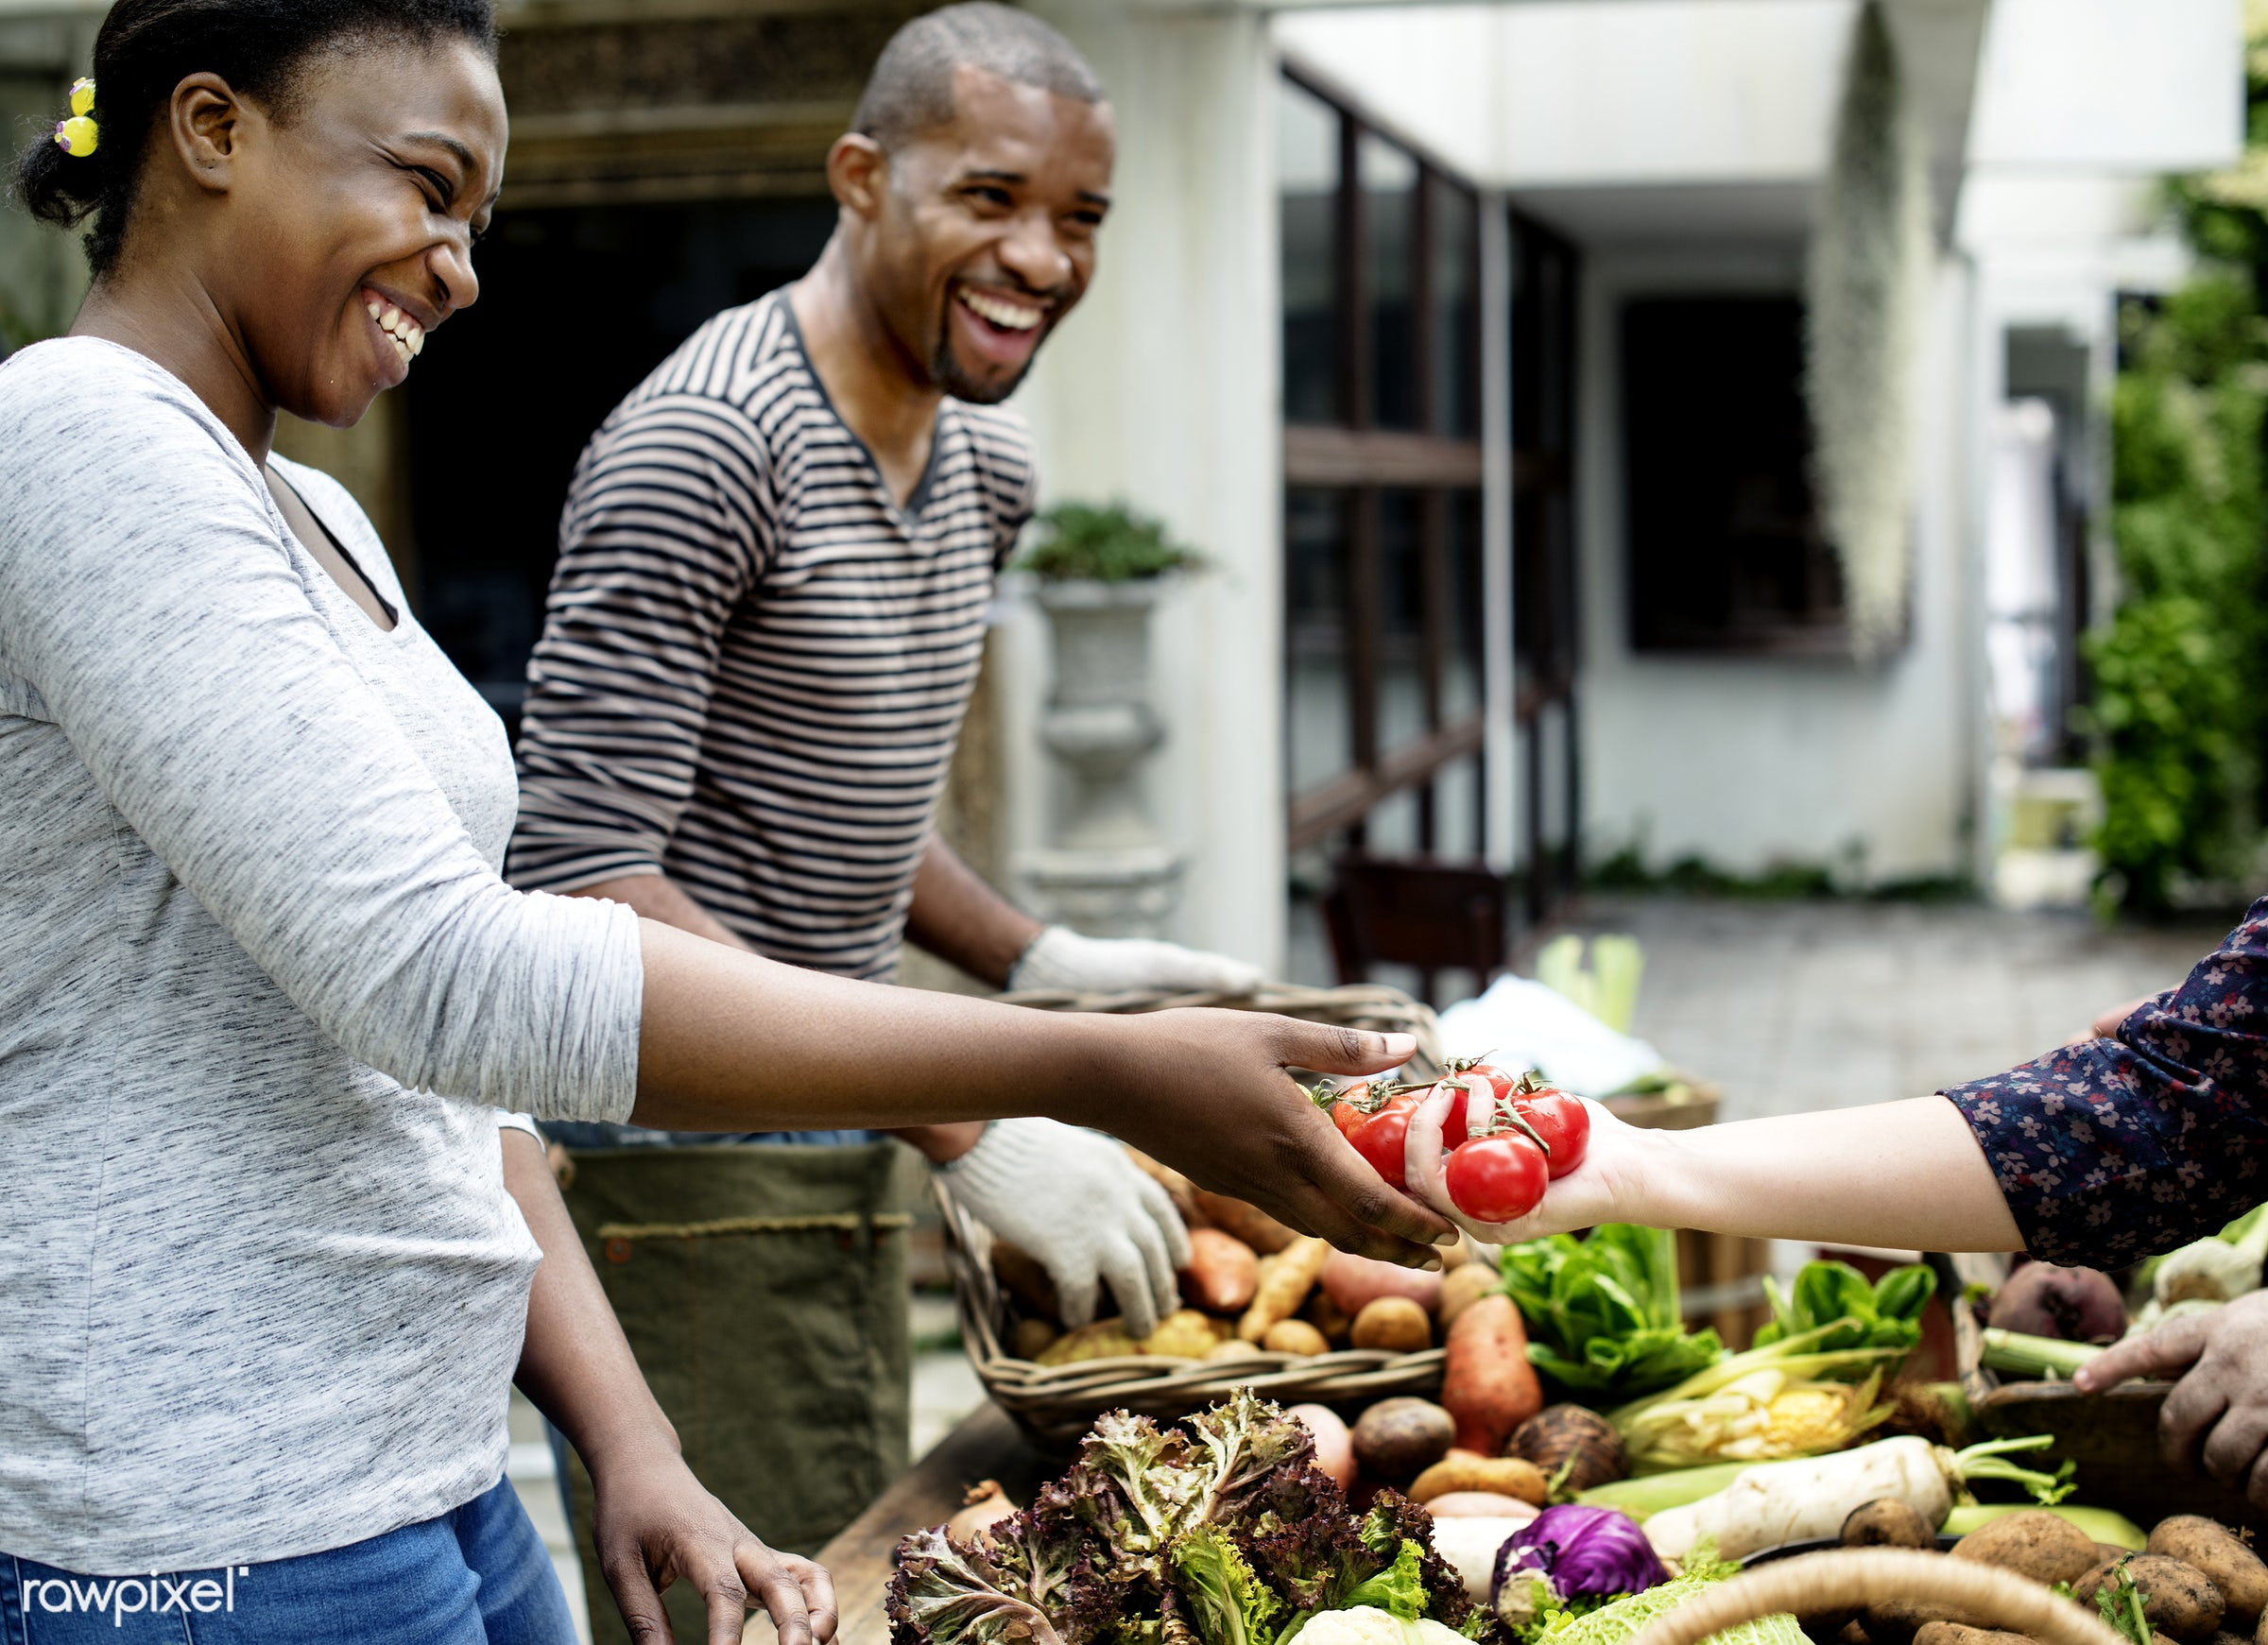 raw, diverse, buy, farm, ingredients, friends, sharing, farmer, nature, fresh, choosing, products, african descent,...